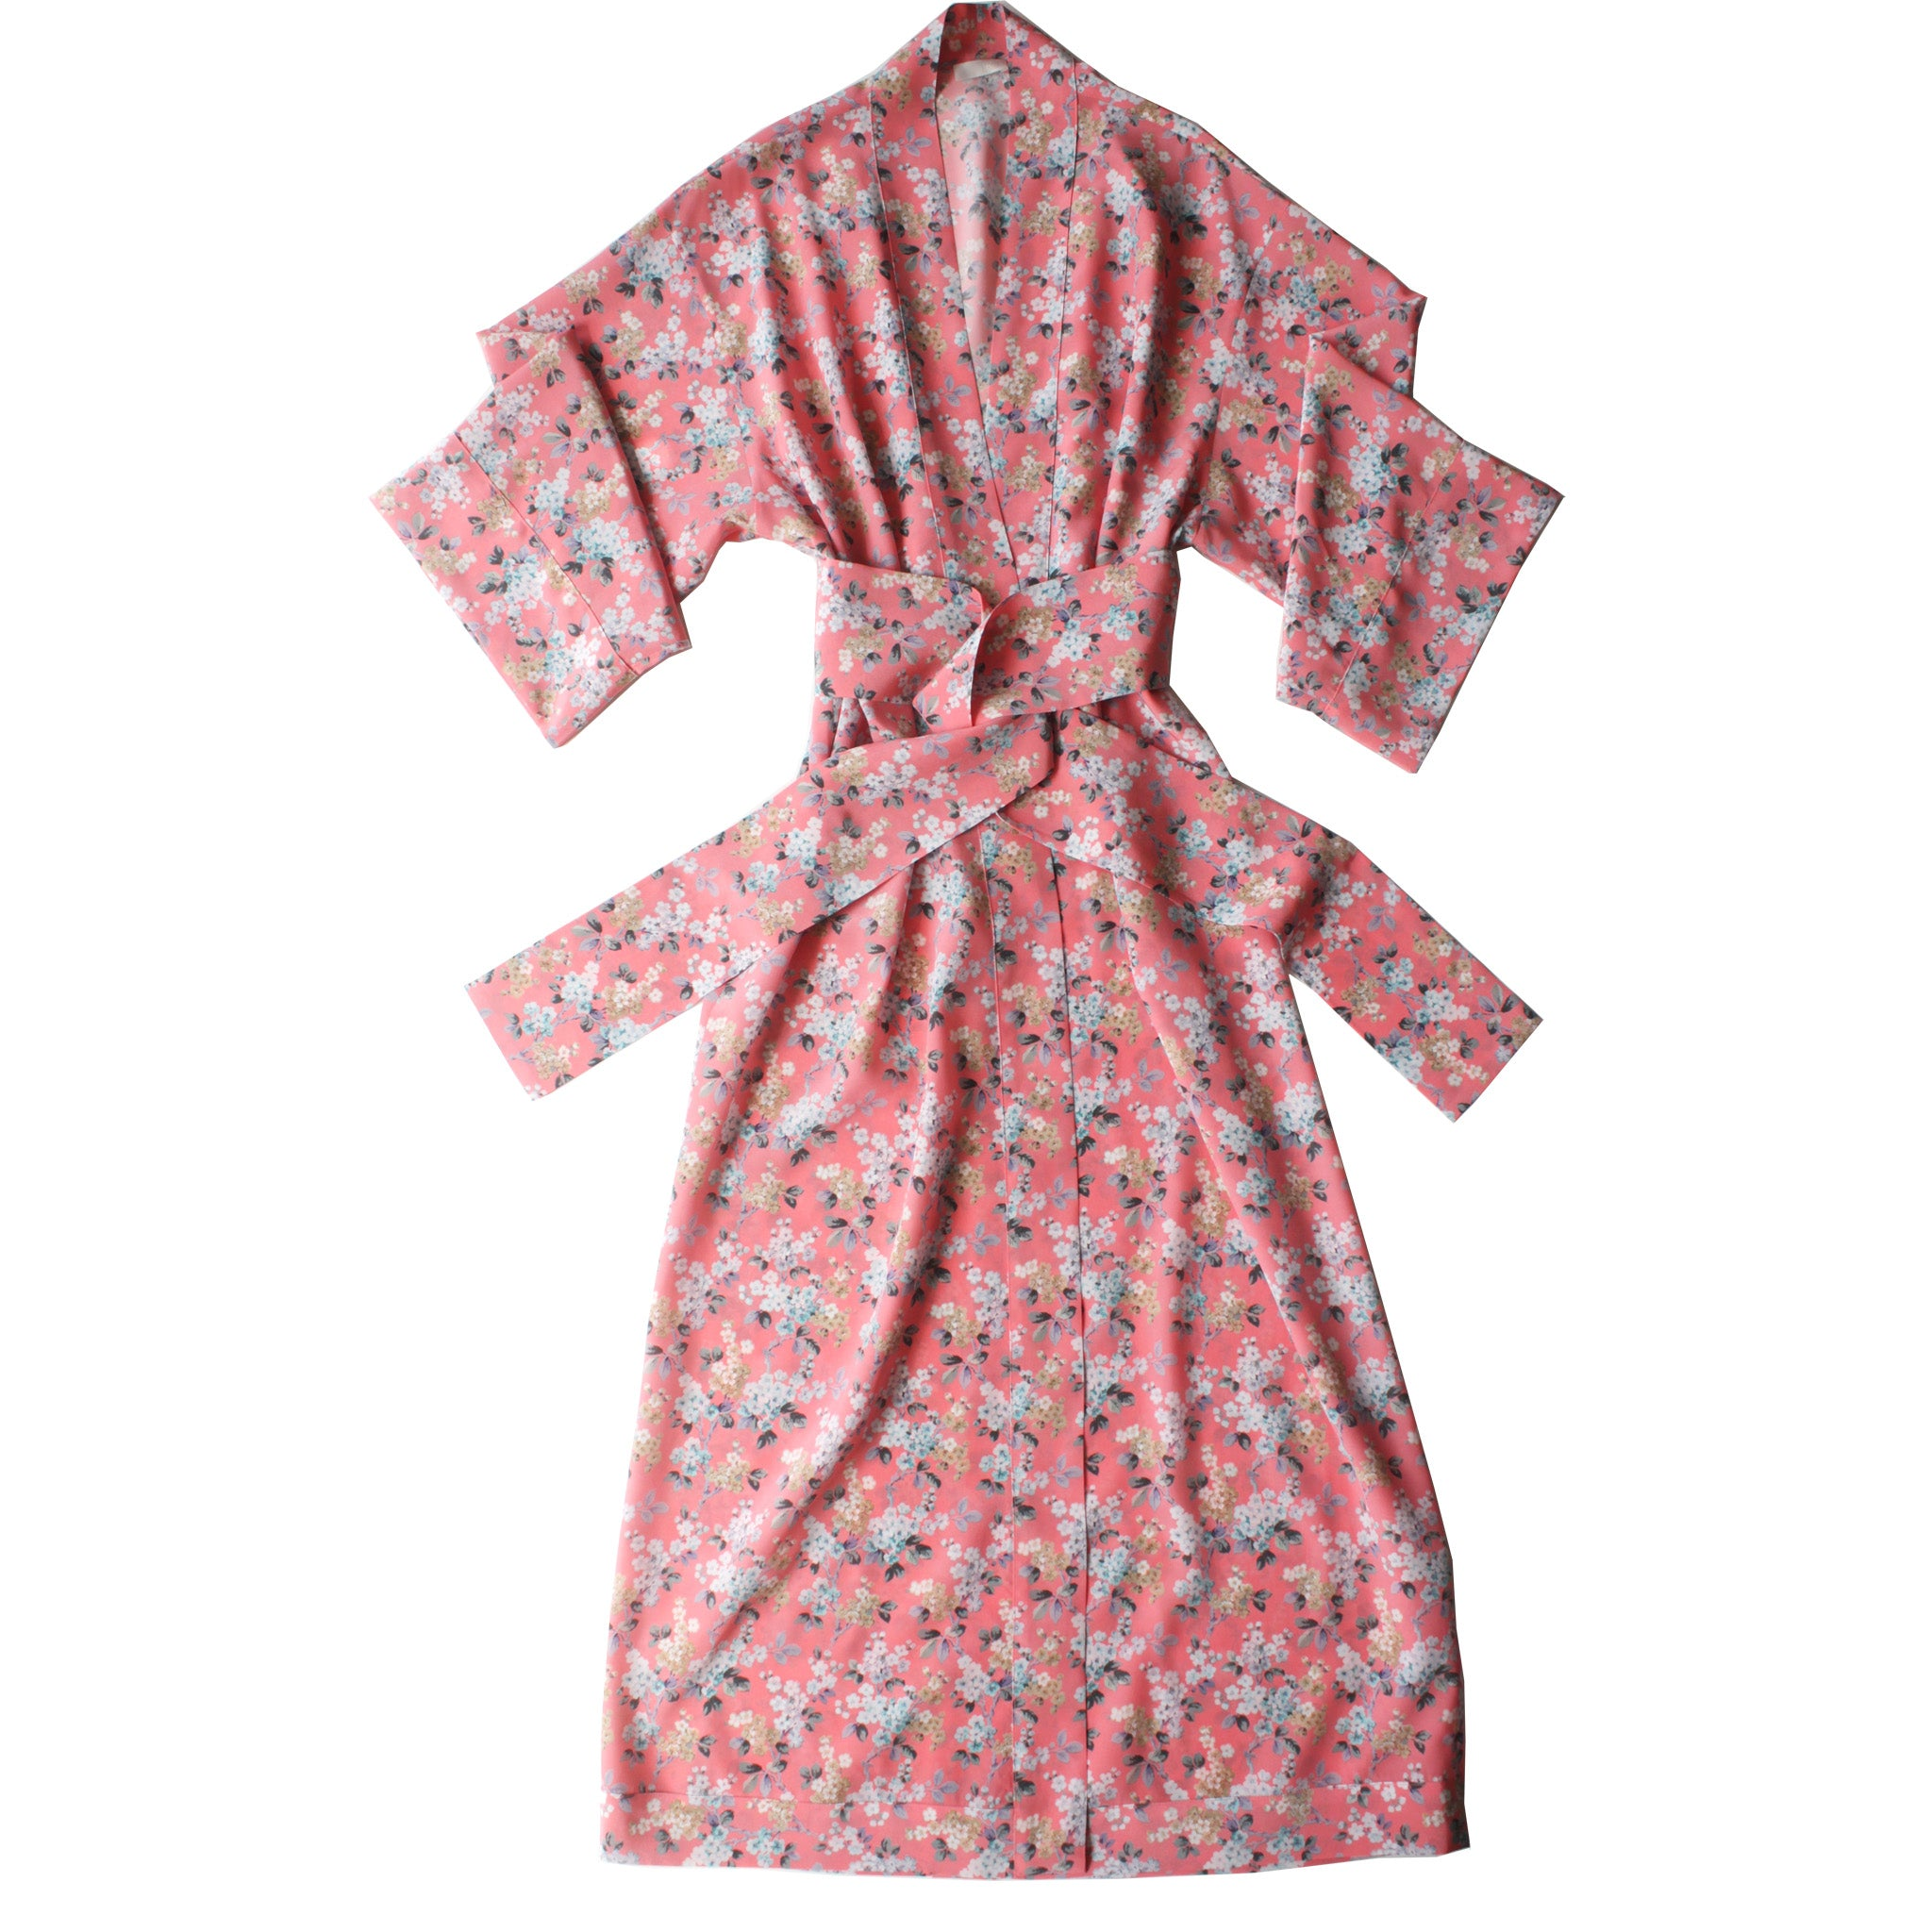 Asteria Kimono Robe in Liberty of London Josephine Silk Crepe De Chine